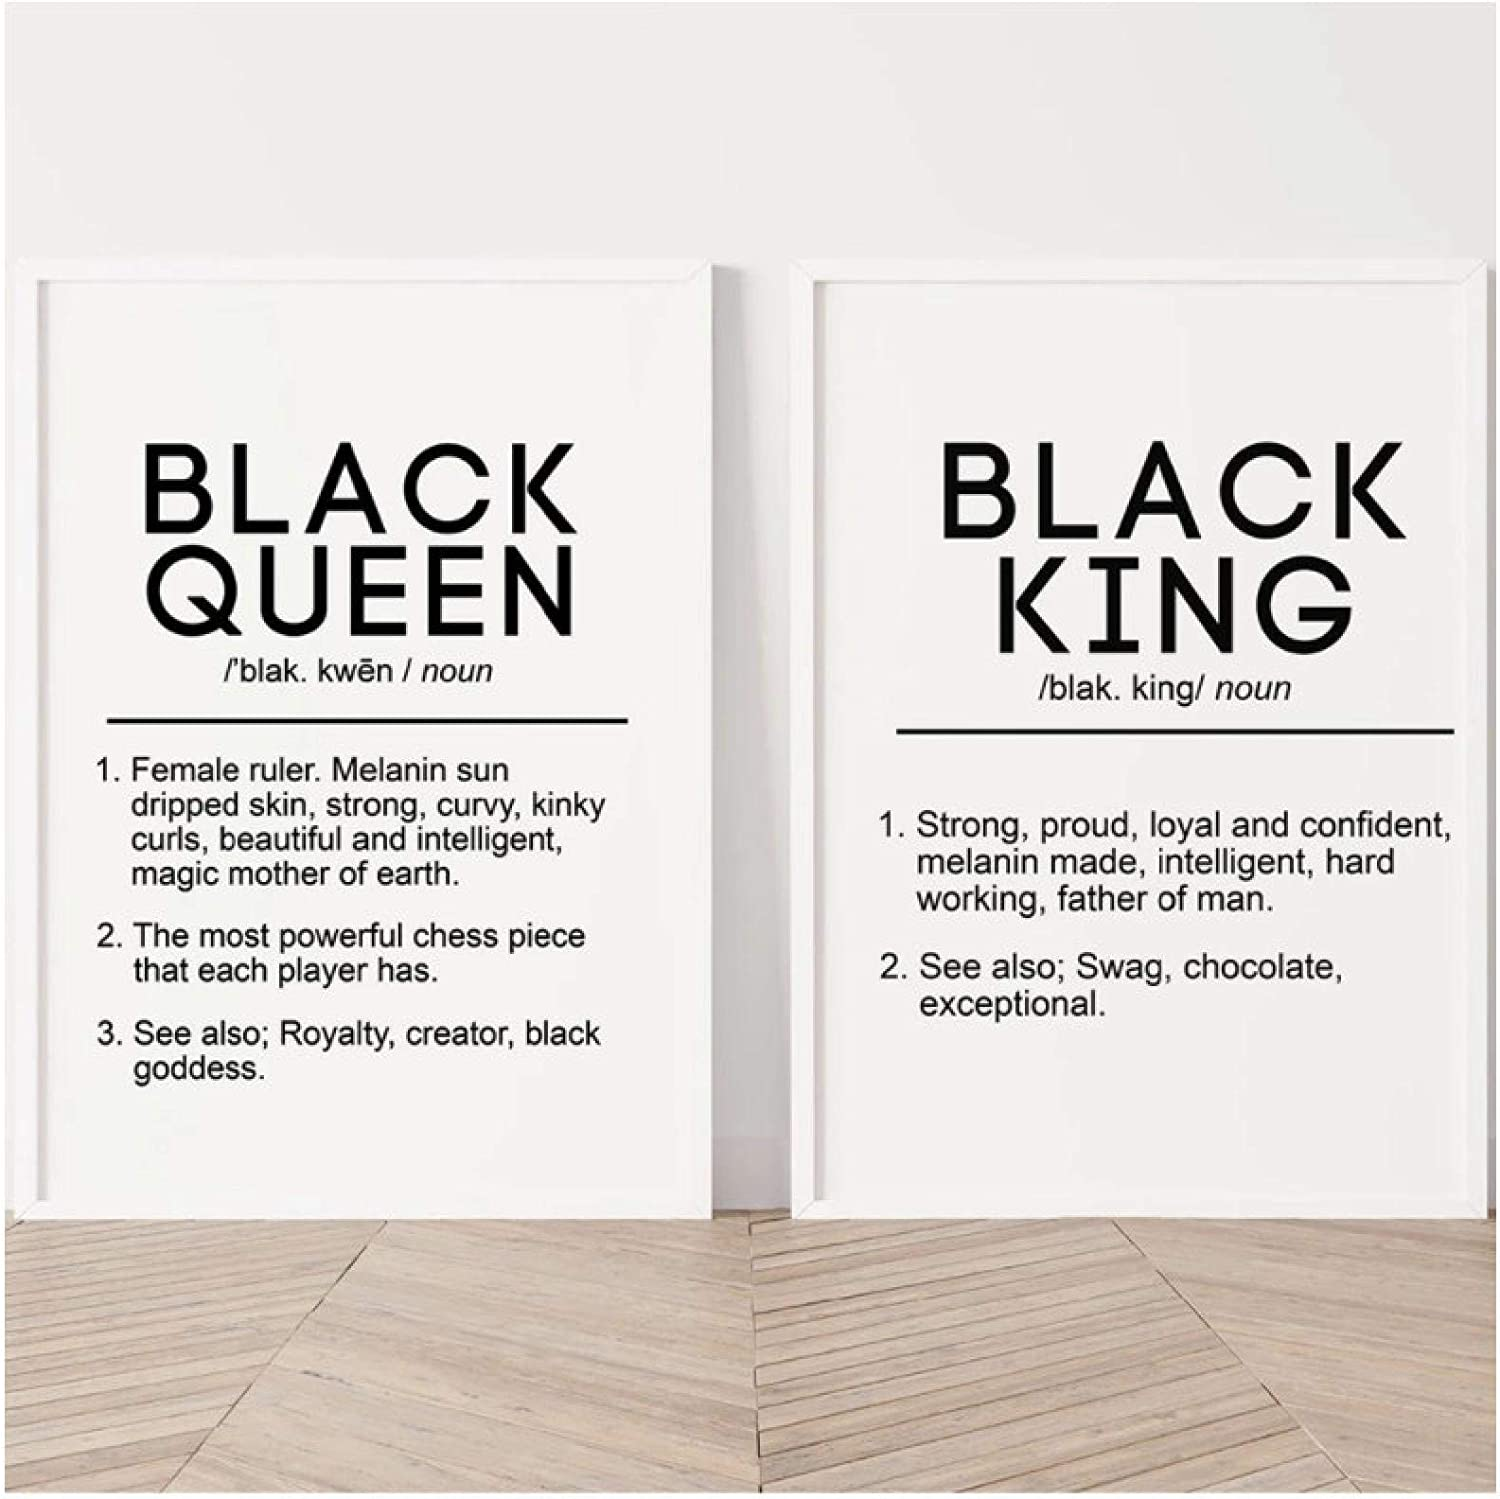 Vektenxi Decoration Canvas Painting Black King and Queen Definition Quote Posters Prints Bedroom Melanin Wall Art Black Beauty Home Decor -40x50x2Pcscm No Frame